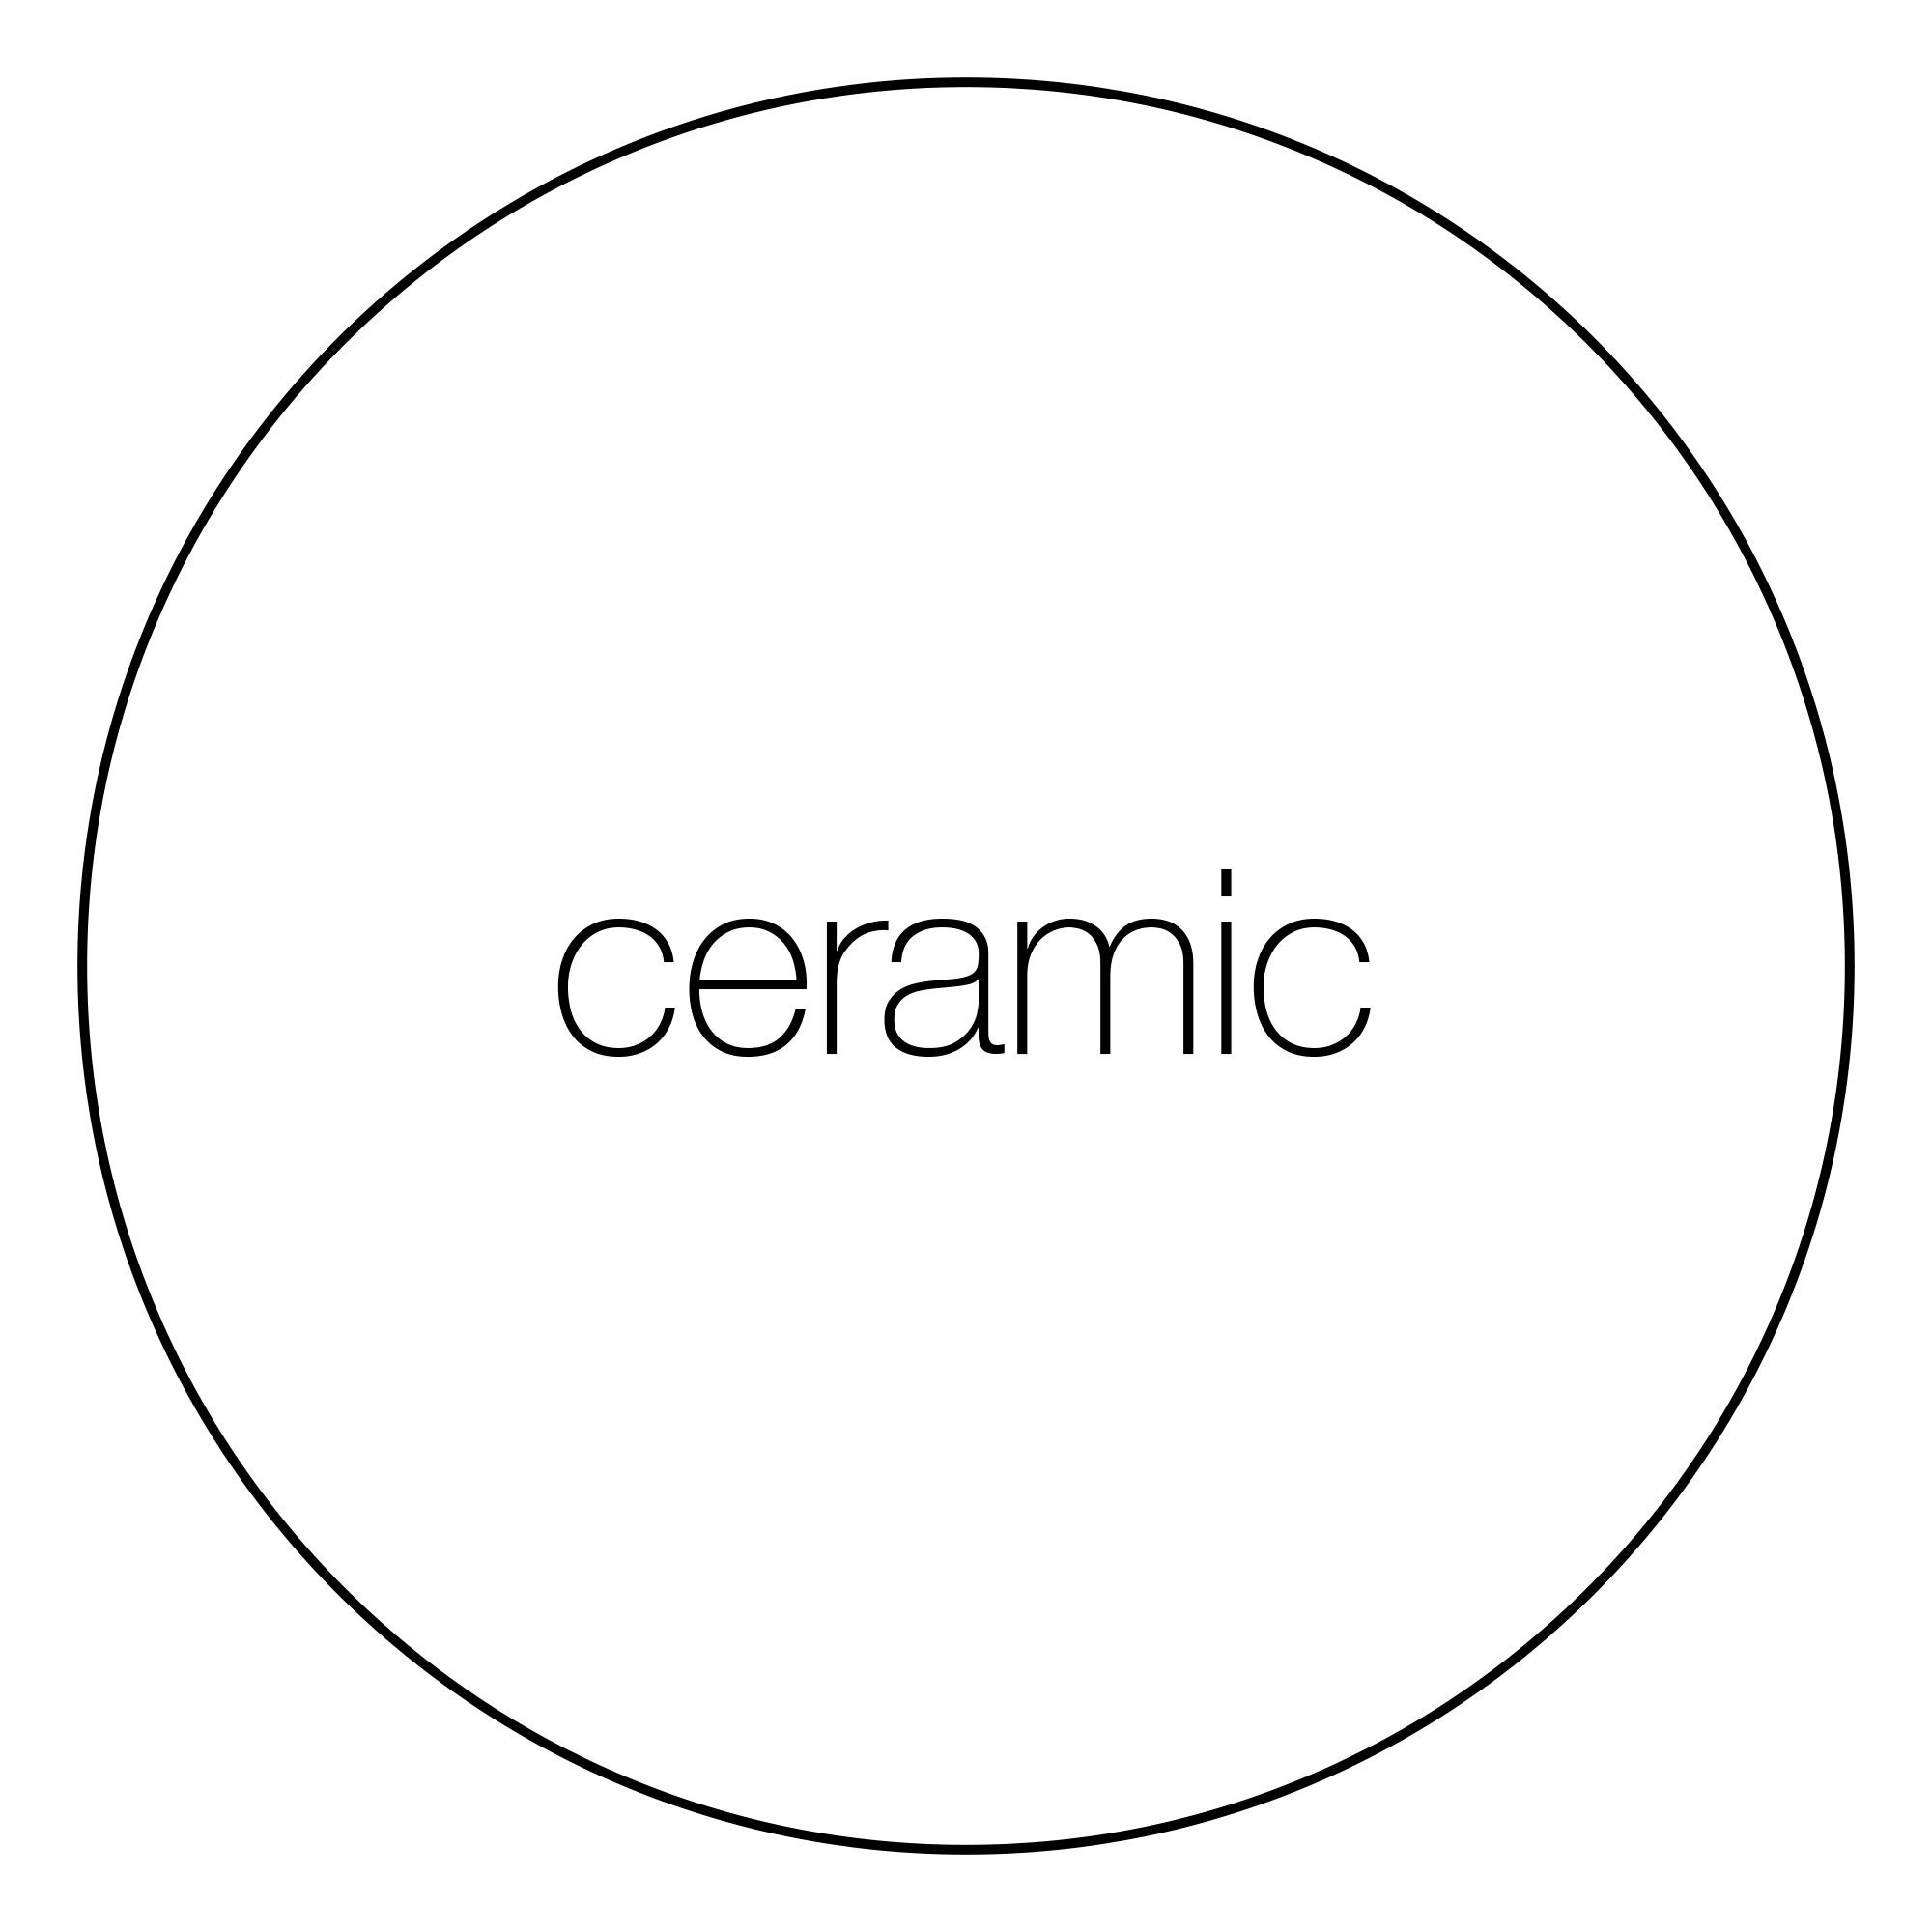 attribute-material-ceramic